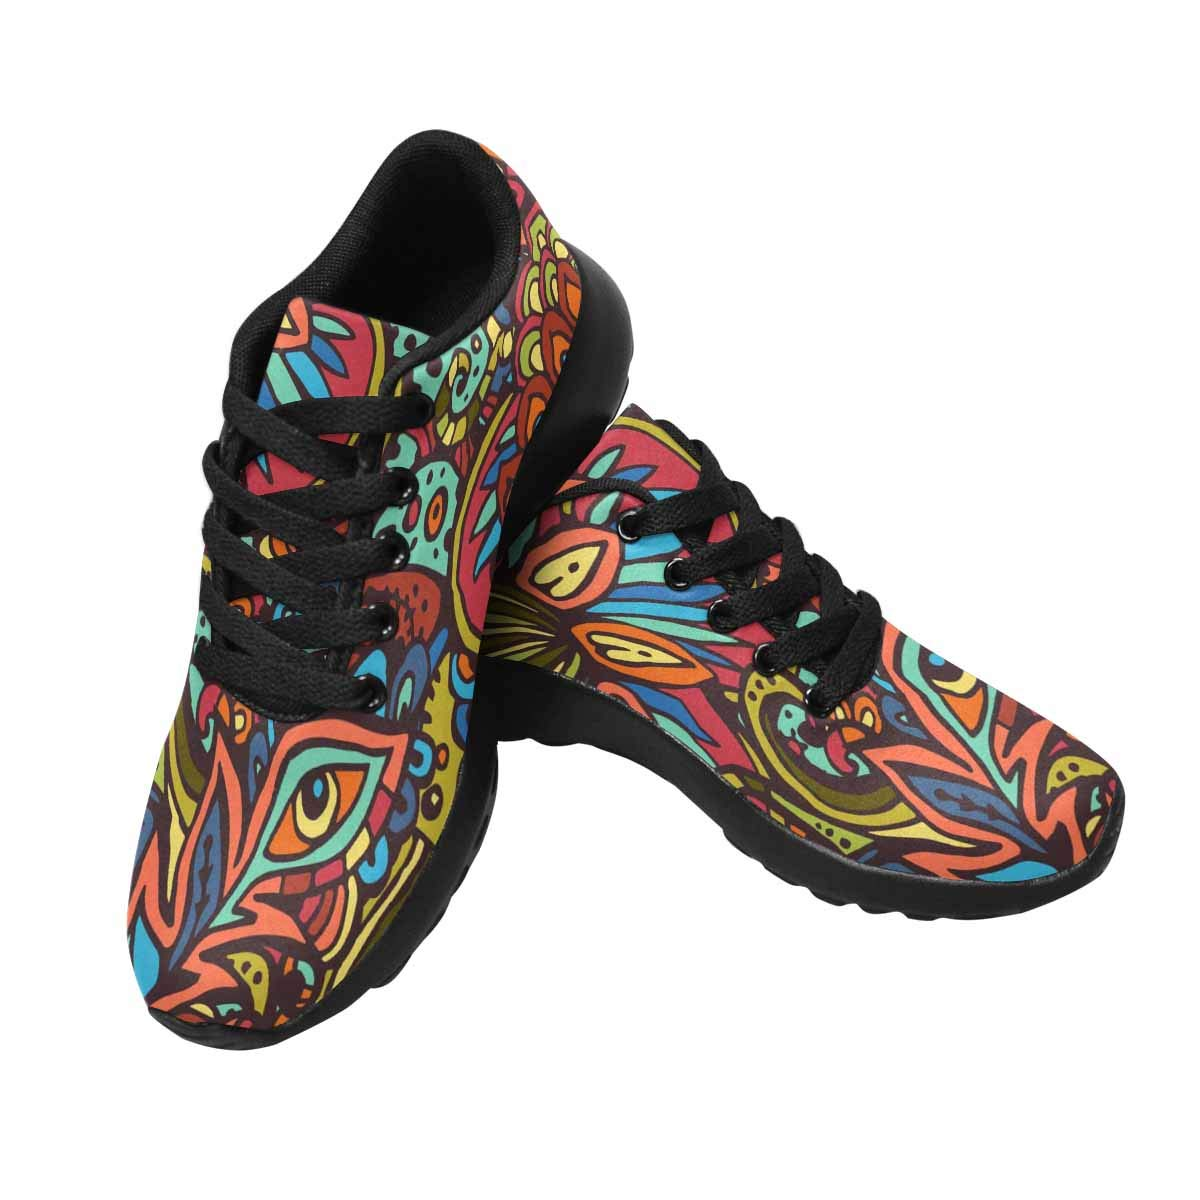 InterestPrint Women's Sports Road Running Shoes Tribal African Style US9